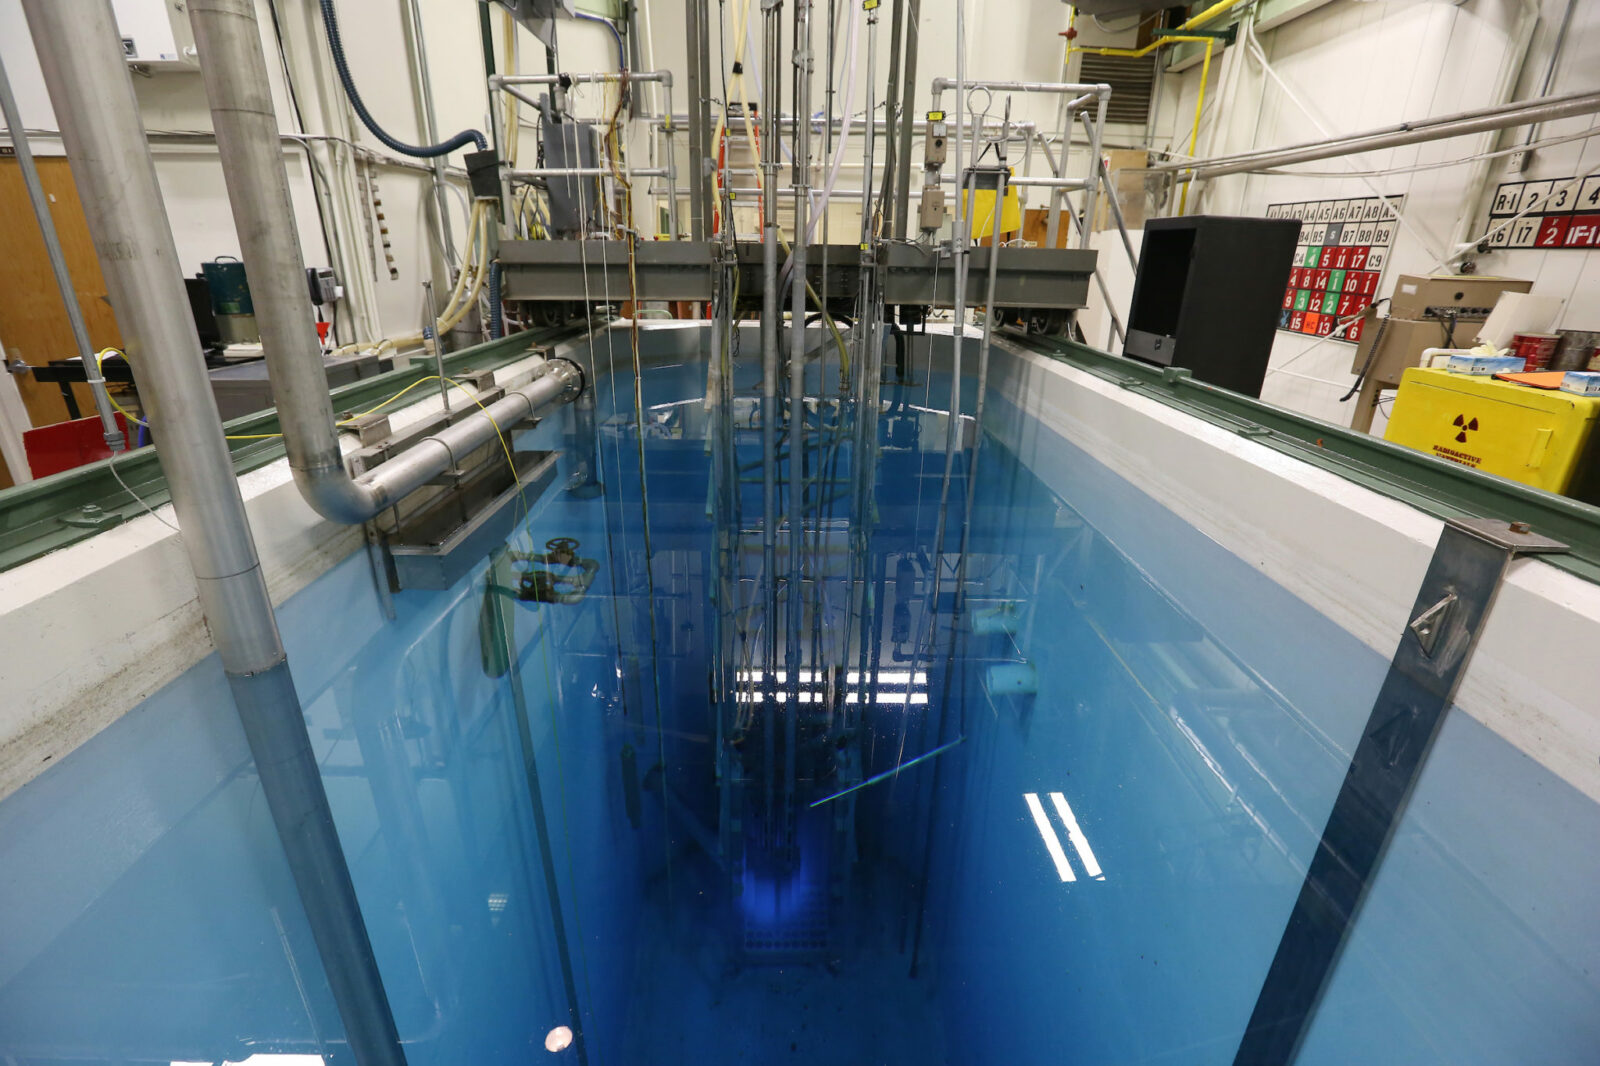 Missouri S&T Nuclear Reactor. Photo by Sam O'Keefe/Missouri S&T.